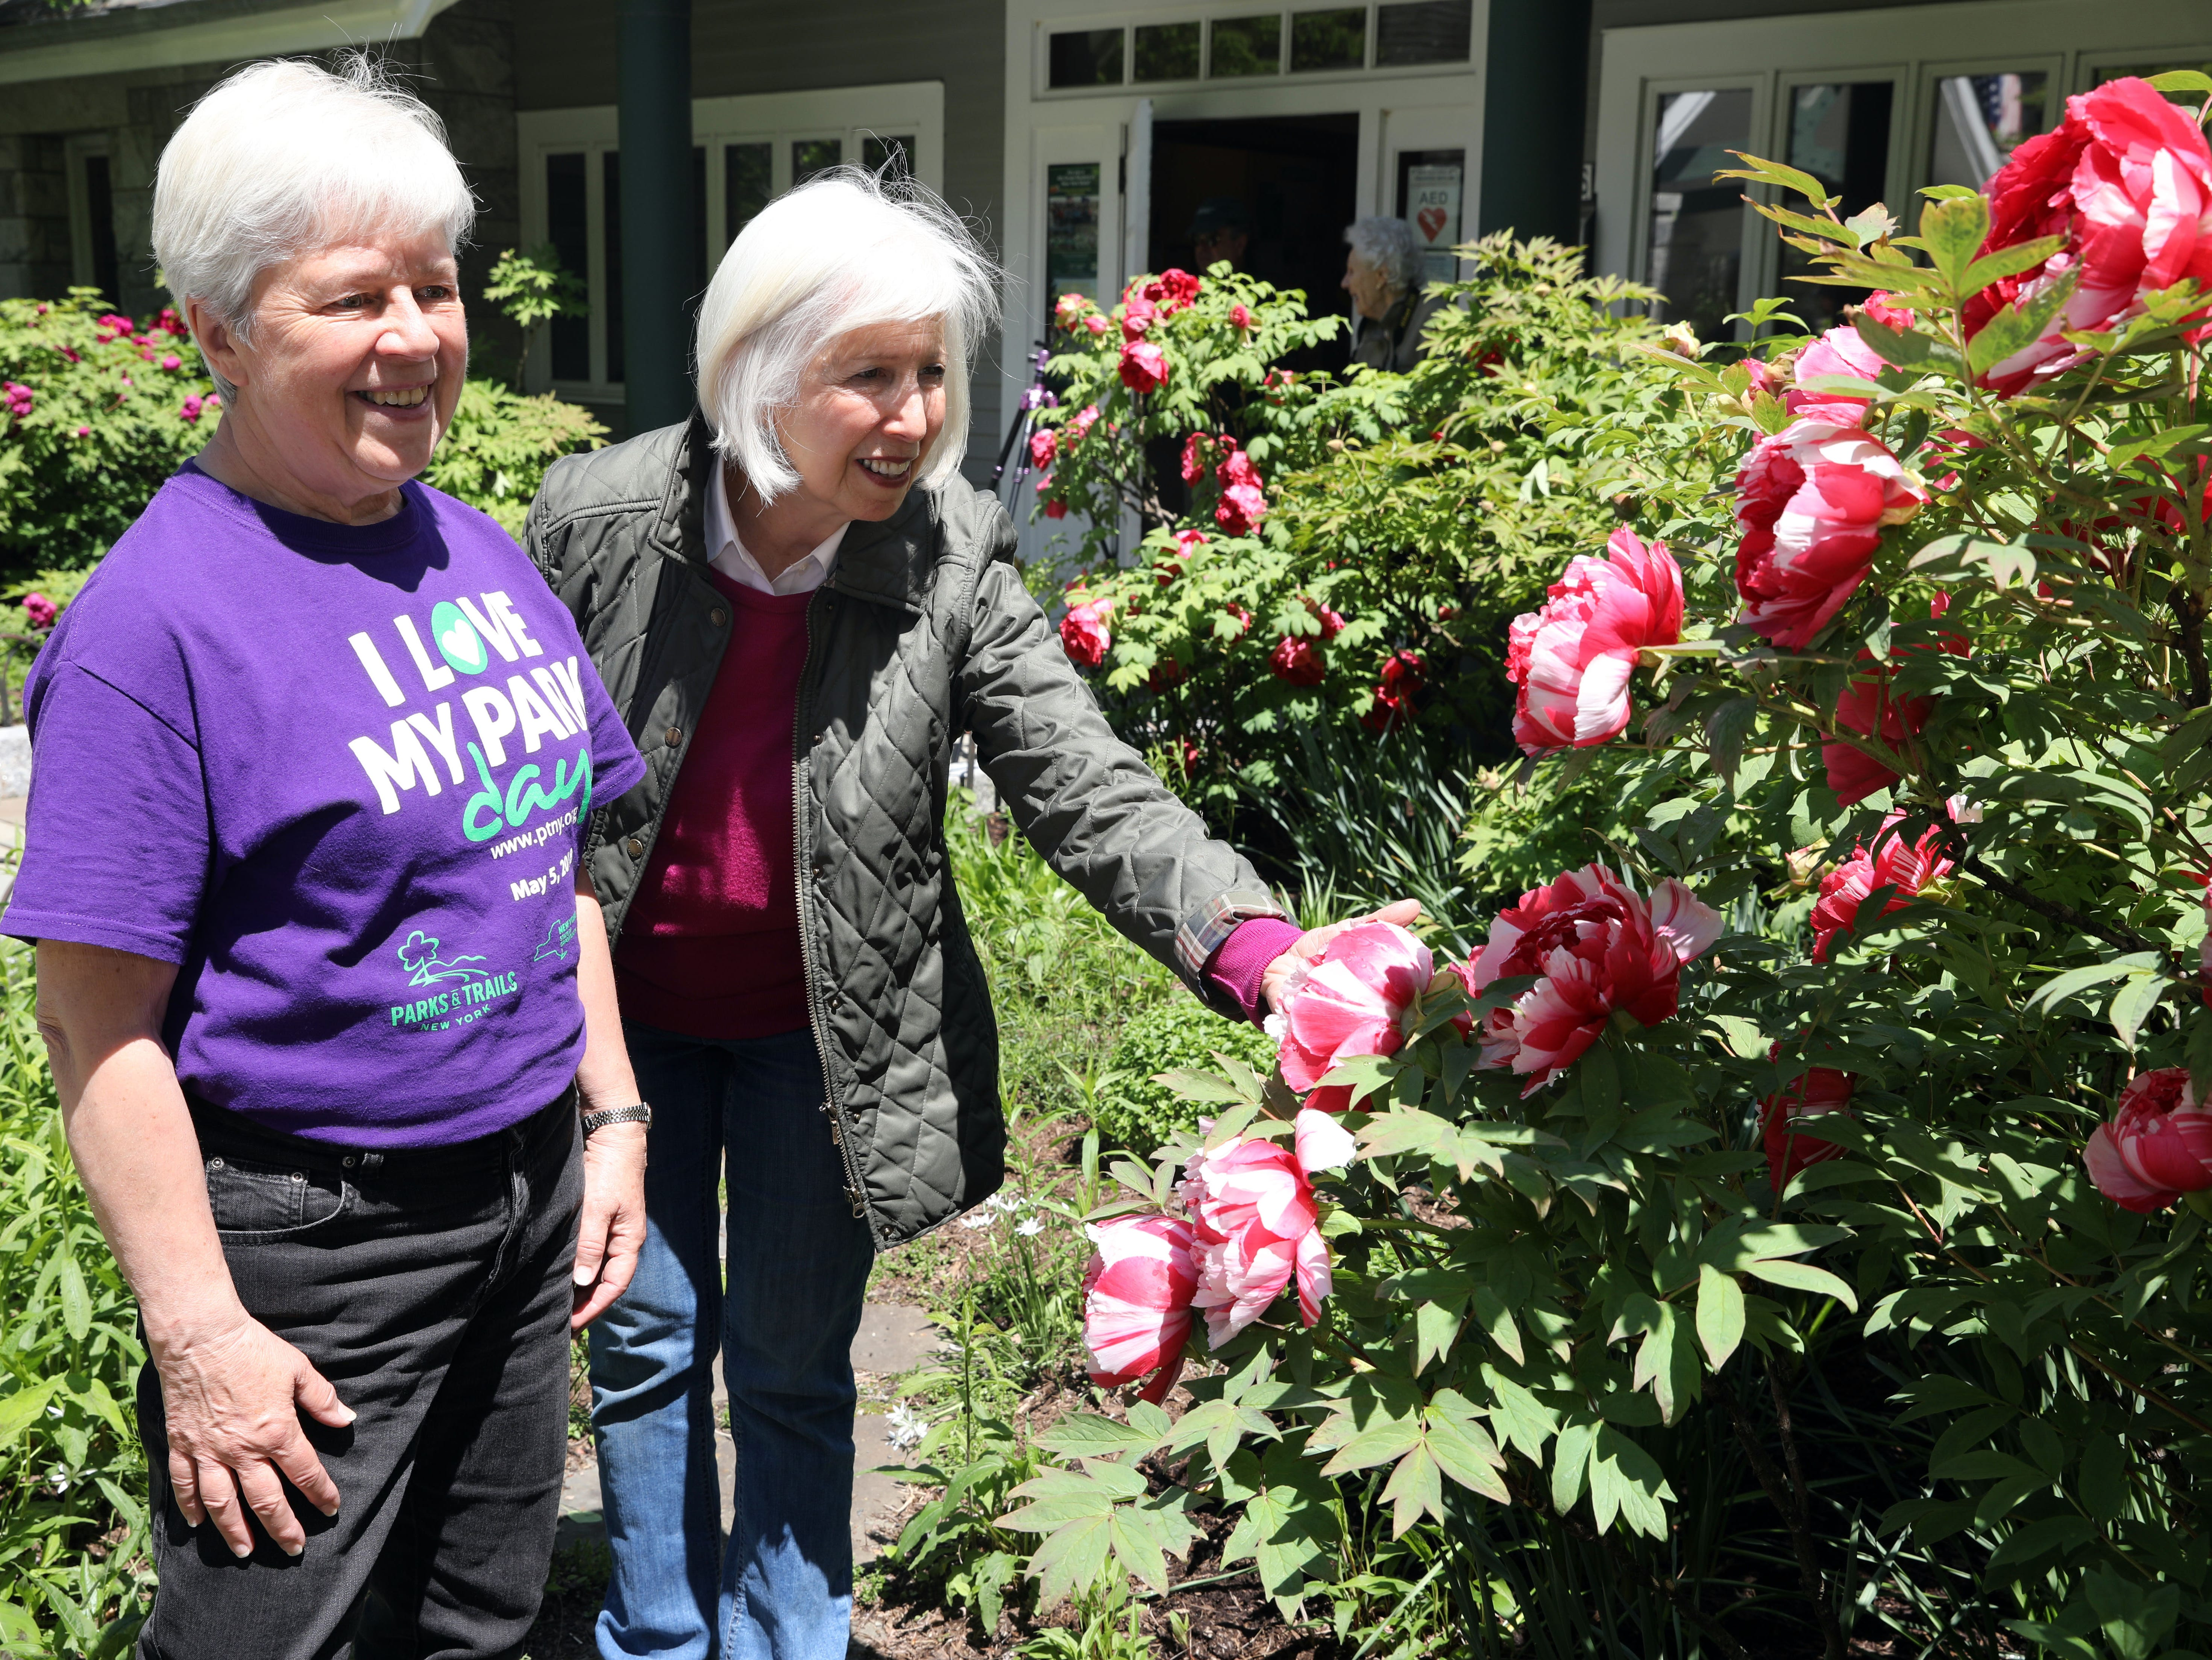 Volunteers Chris Davies, left, and JoAnn Stern, a master gardener, admire the peonies that are in full bloom, which will last another week, at Rockefeller State Park Preserve in Pleasantville May 15, 2019. The 500 tree plants were a gift from Yatsuka Cho, a small town in Japan, to the Friends of the Rockefeller State Park Preserve to help unite the two countries after September 11.